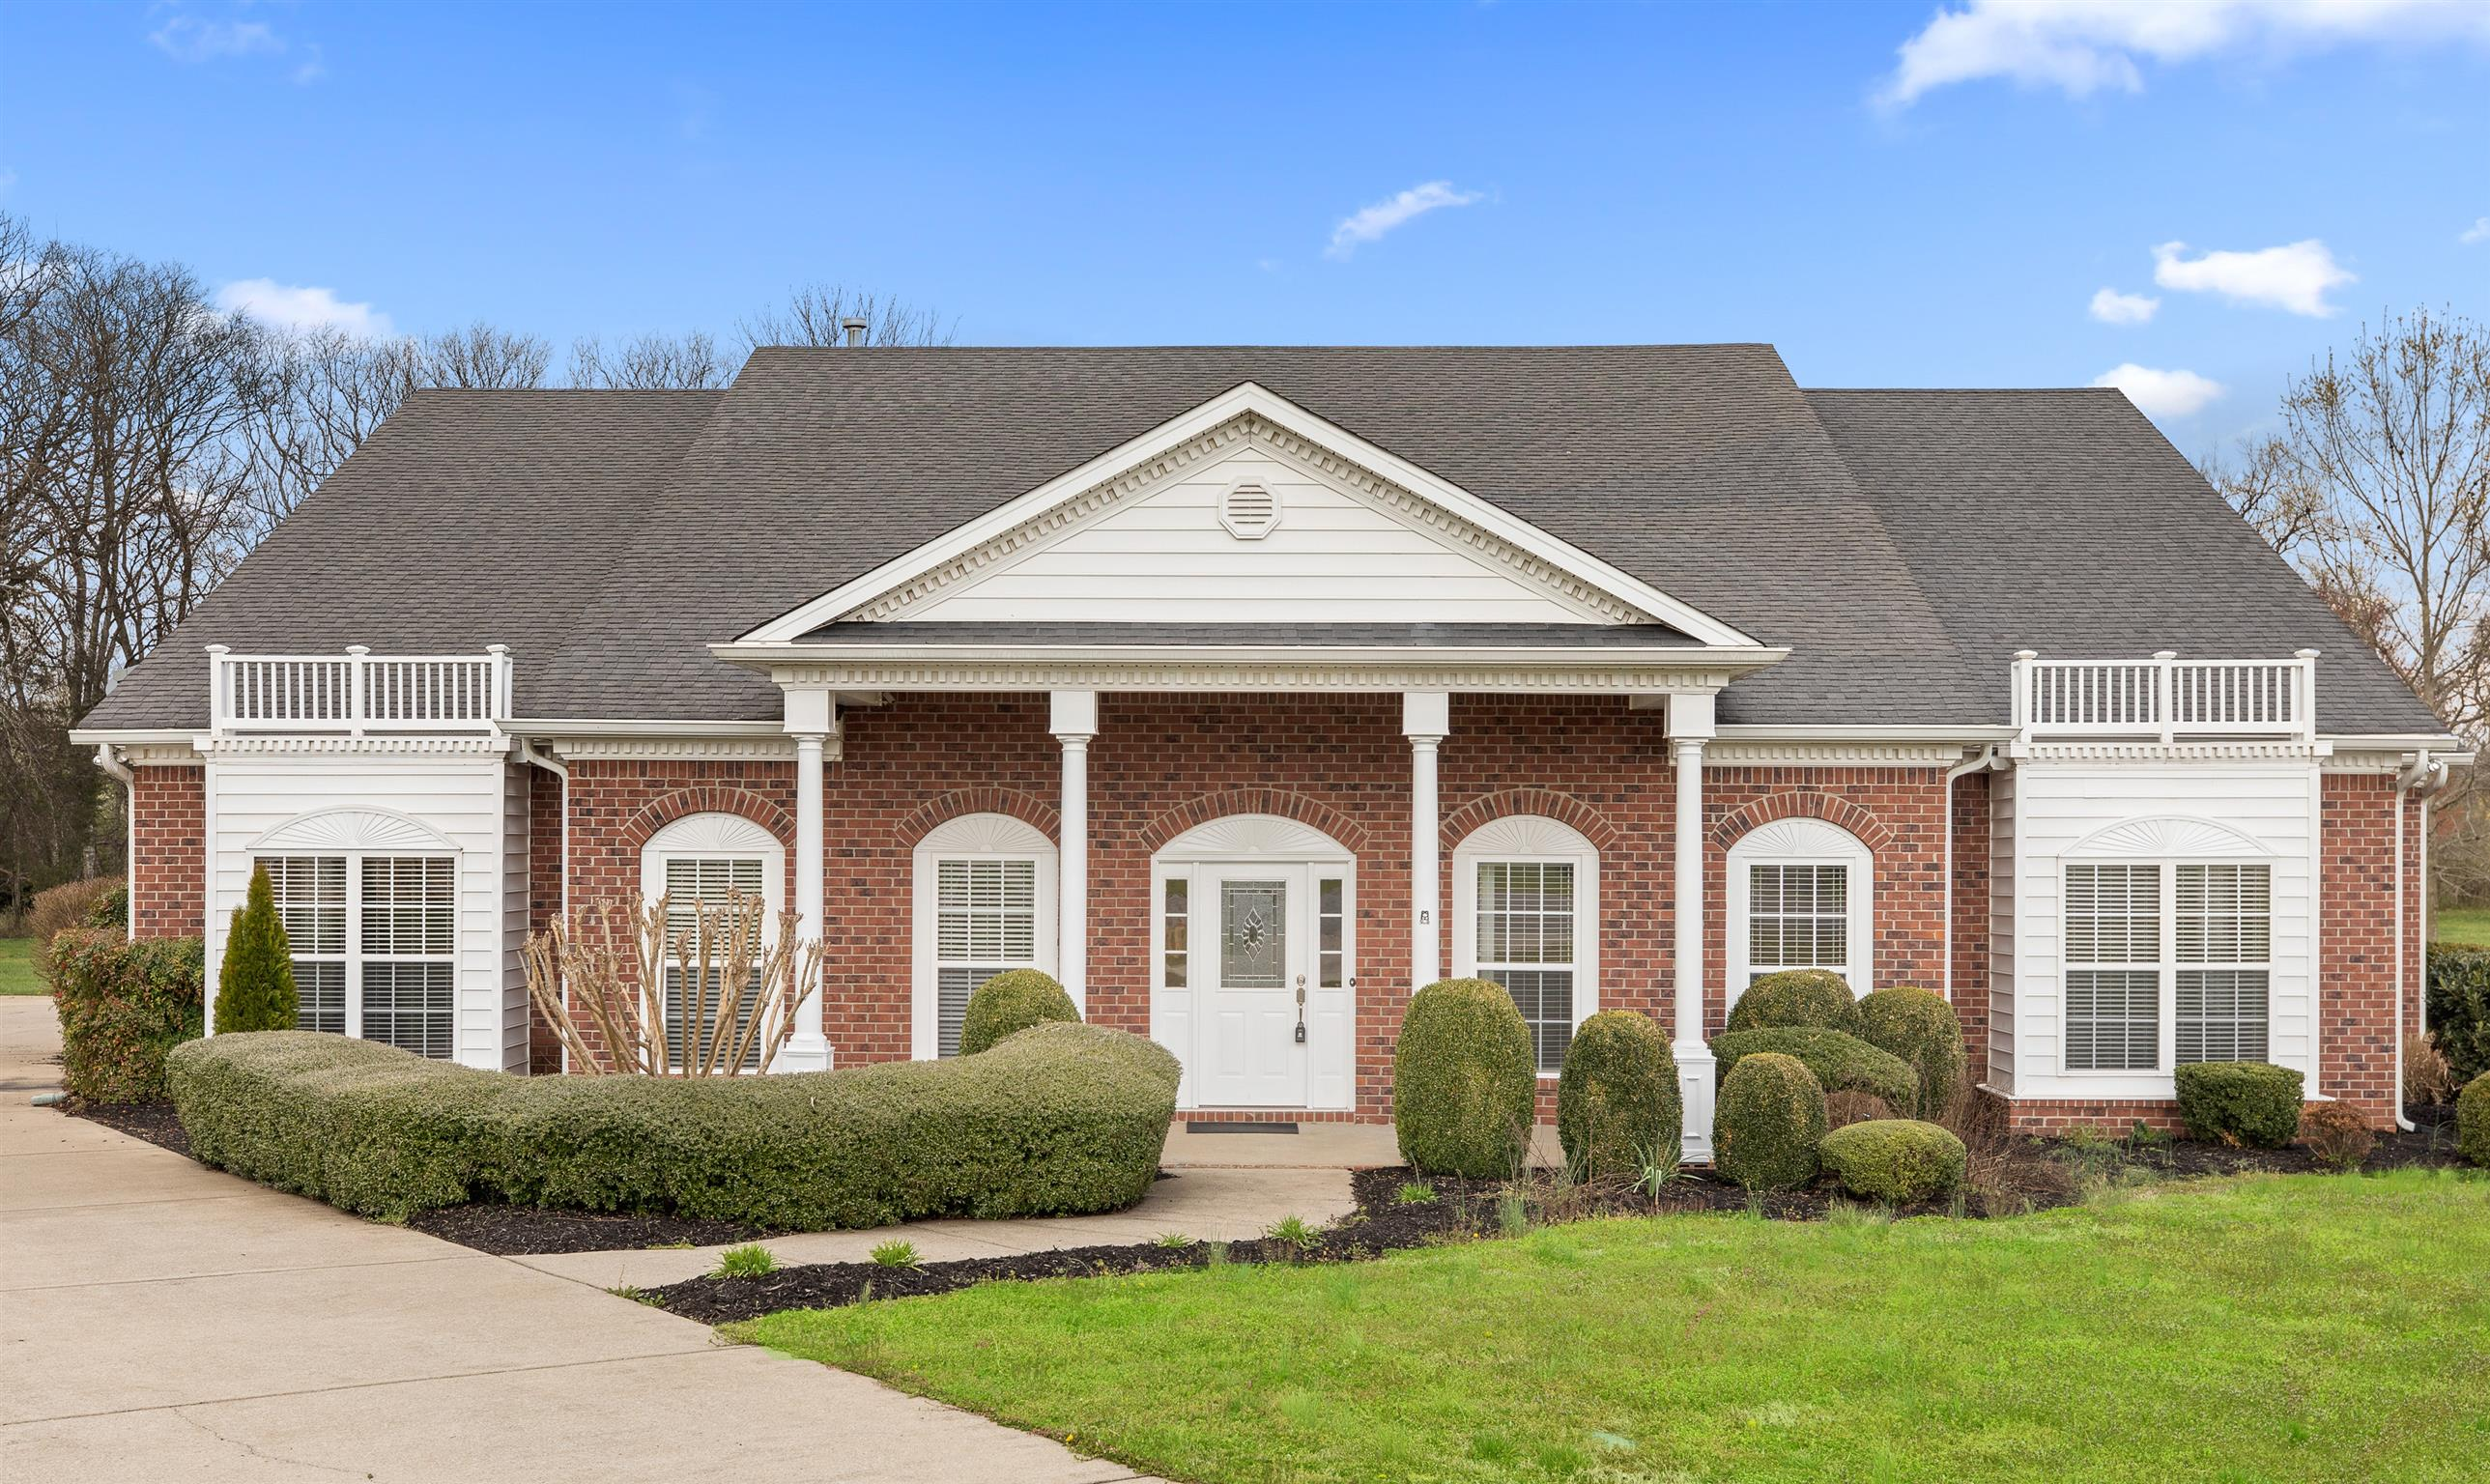 160 Lakepointe Rd, LA VERGNE, TN 37086 - LA VERGNE, TN real estate listing